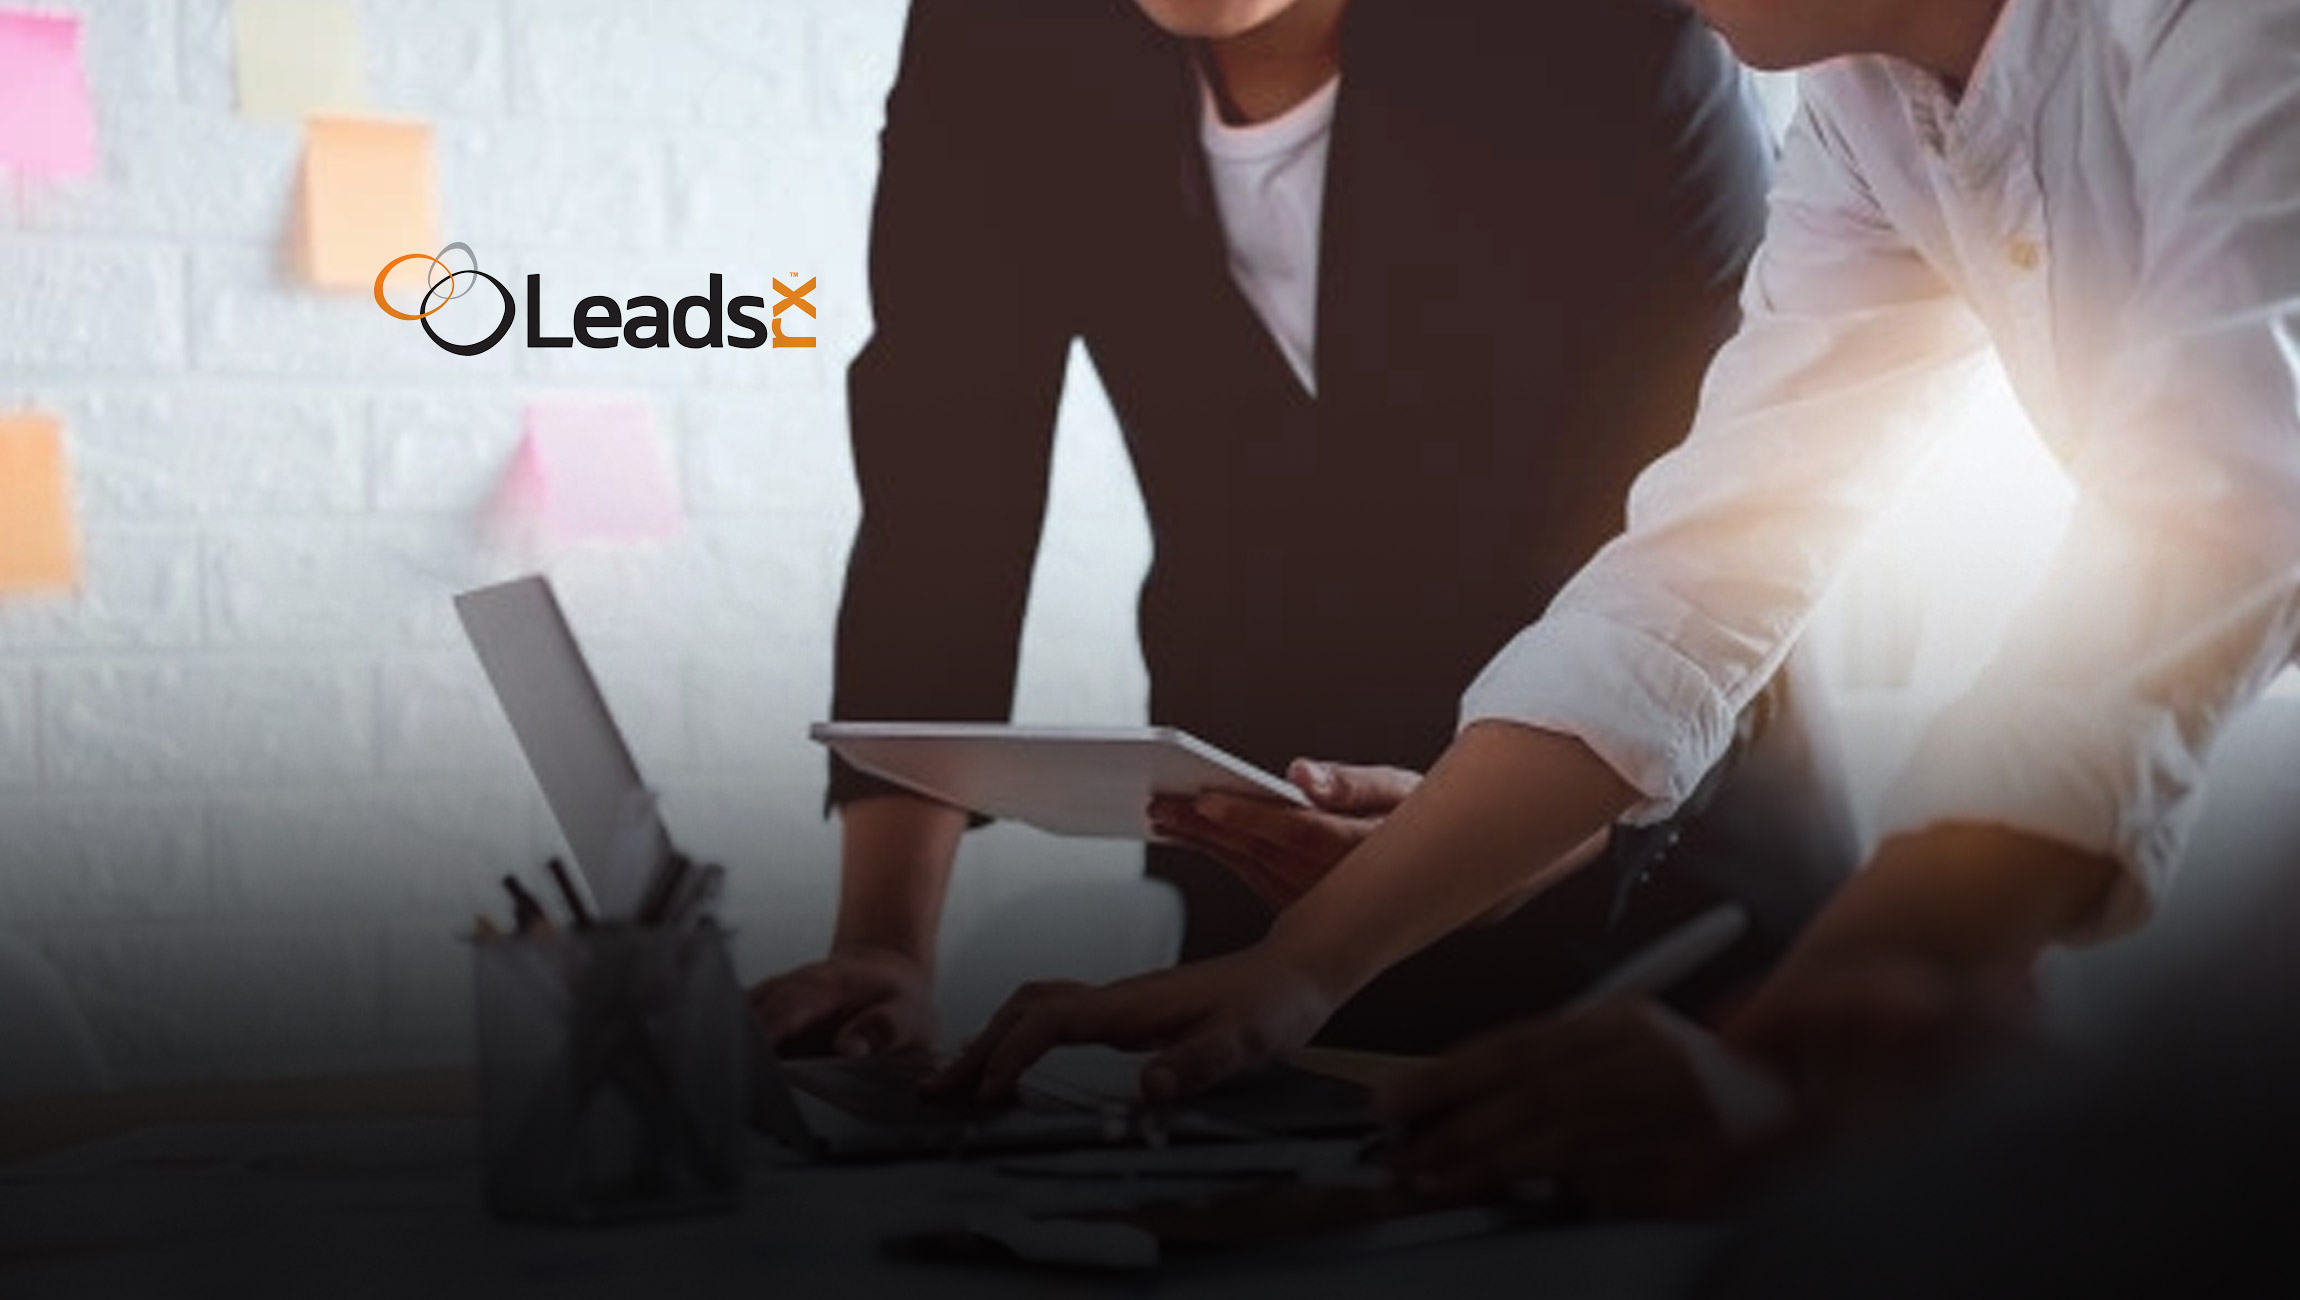 New LeadsRx Ecosystem Attribution Product Enables Transparency Between Online Marketplaces and their Trusted Partners within a First-Party Data Framework